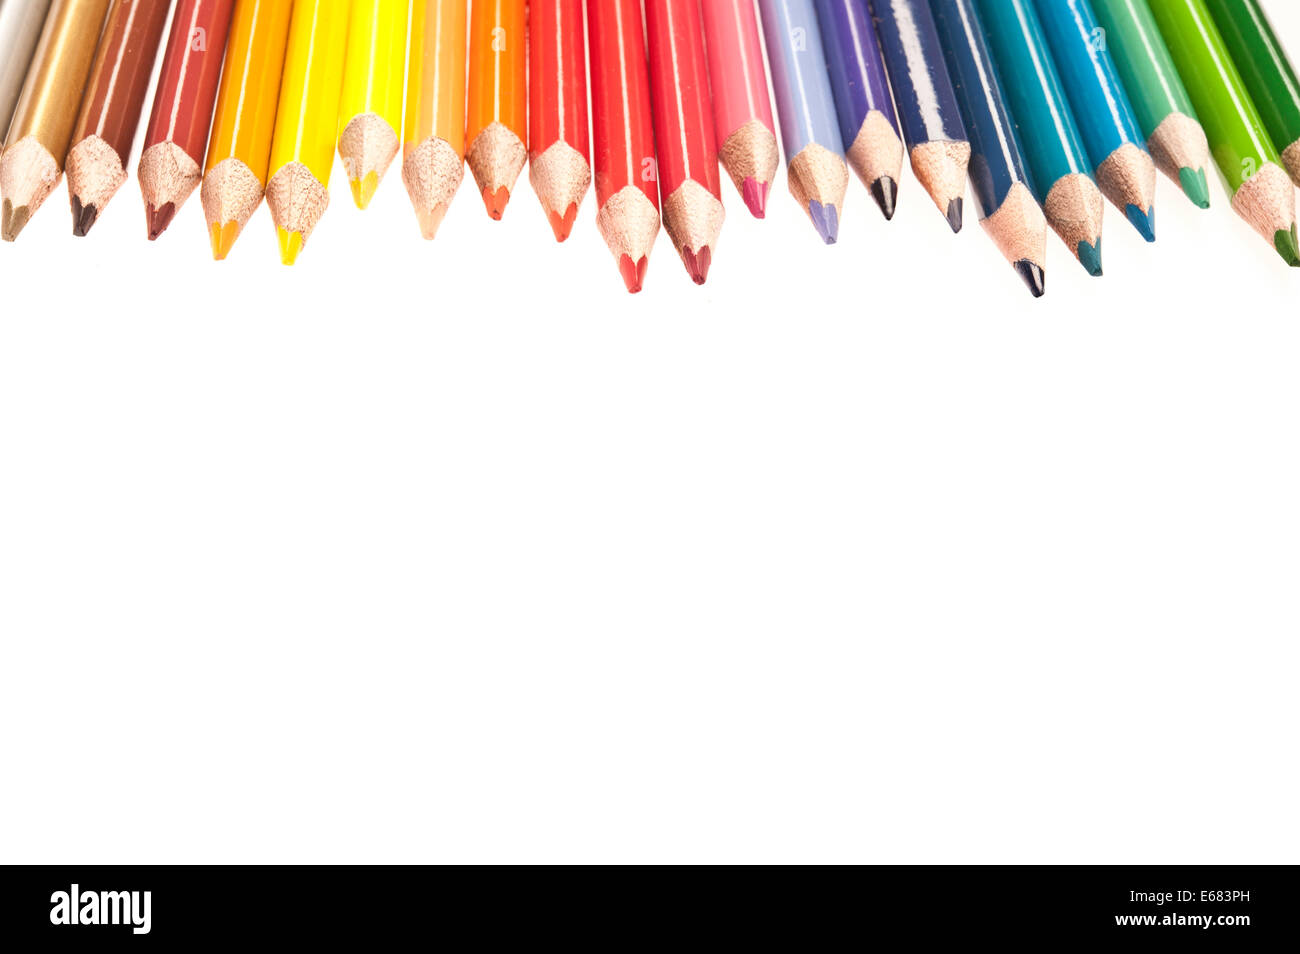 colouring pencils - Stock Image